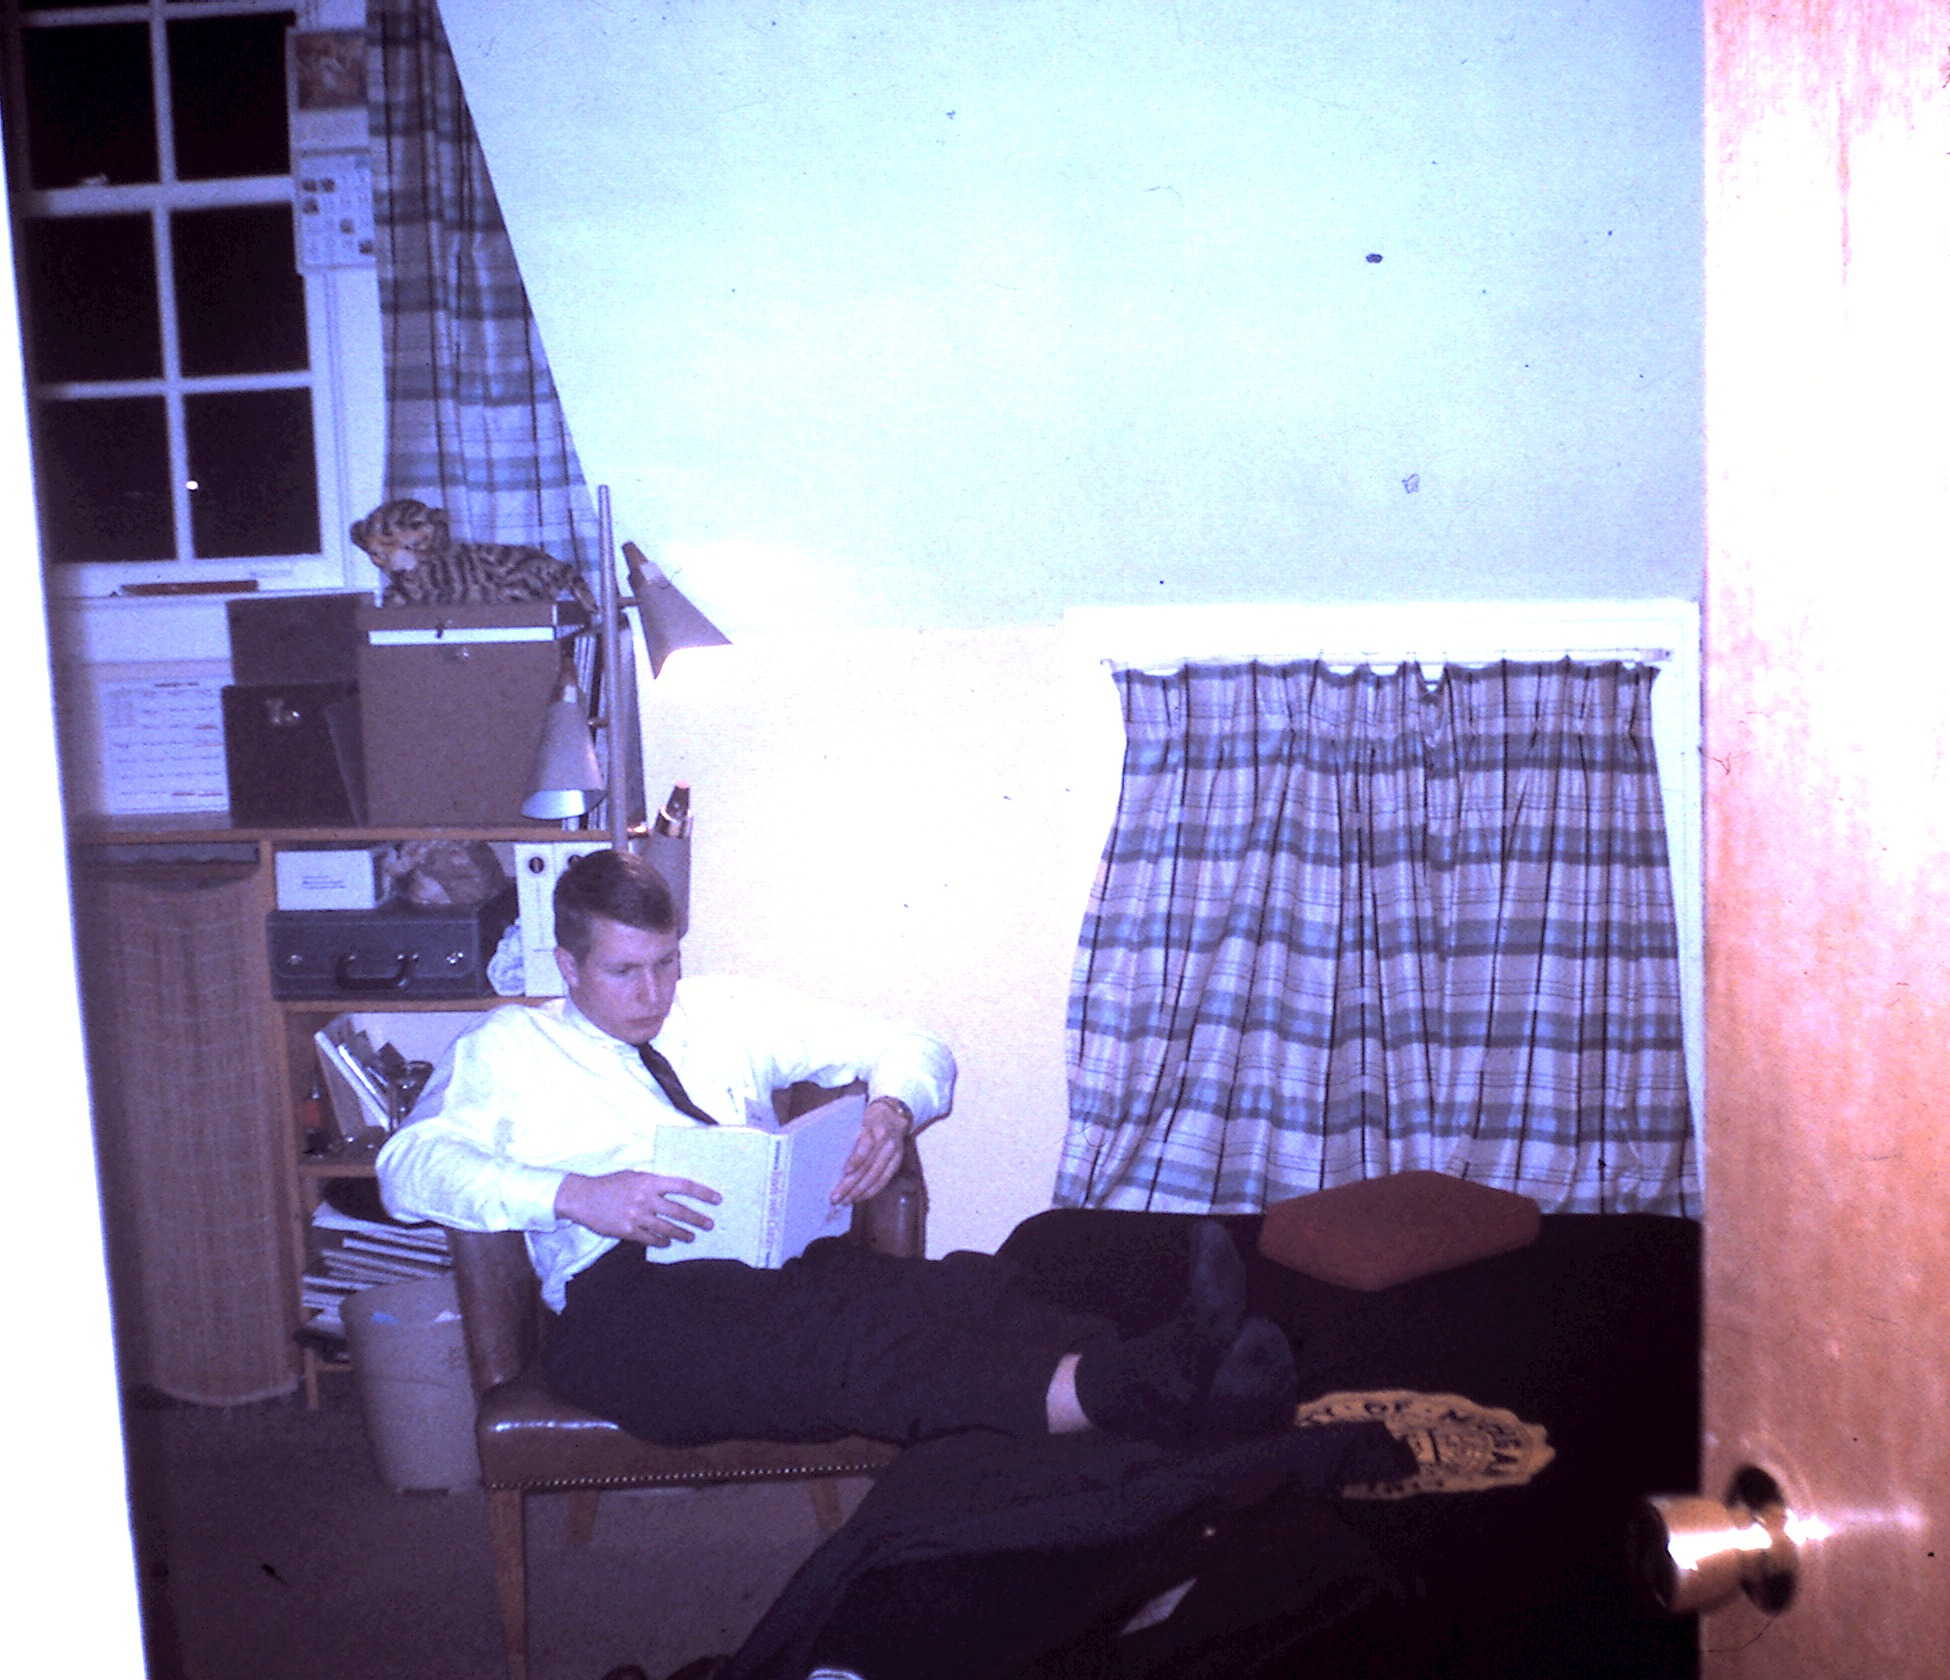 A Sigma brother (possibly John Moorhead '63) in his room at the chapter house, 1963